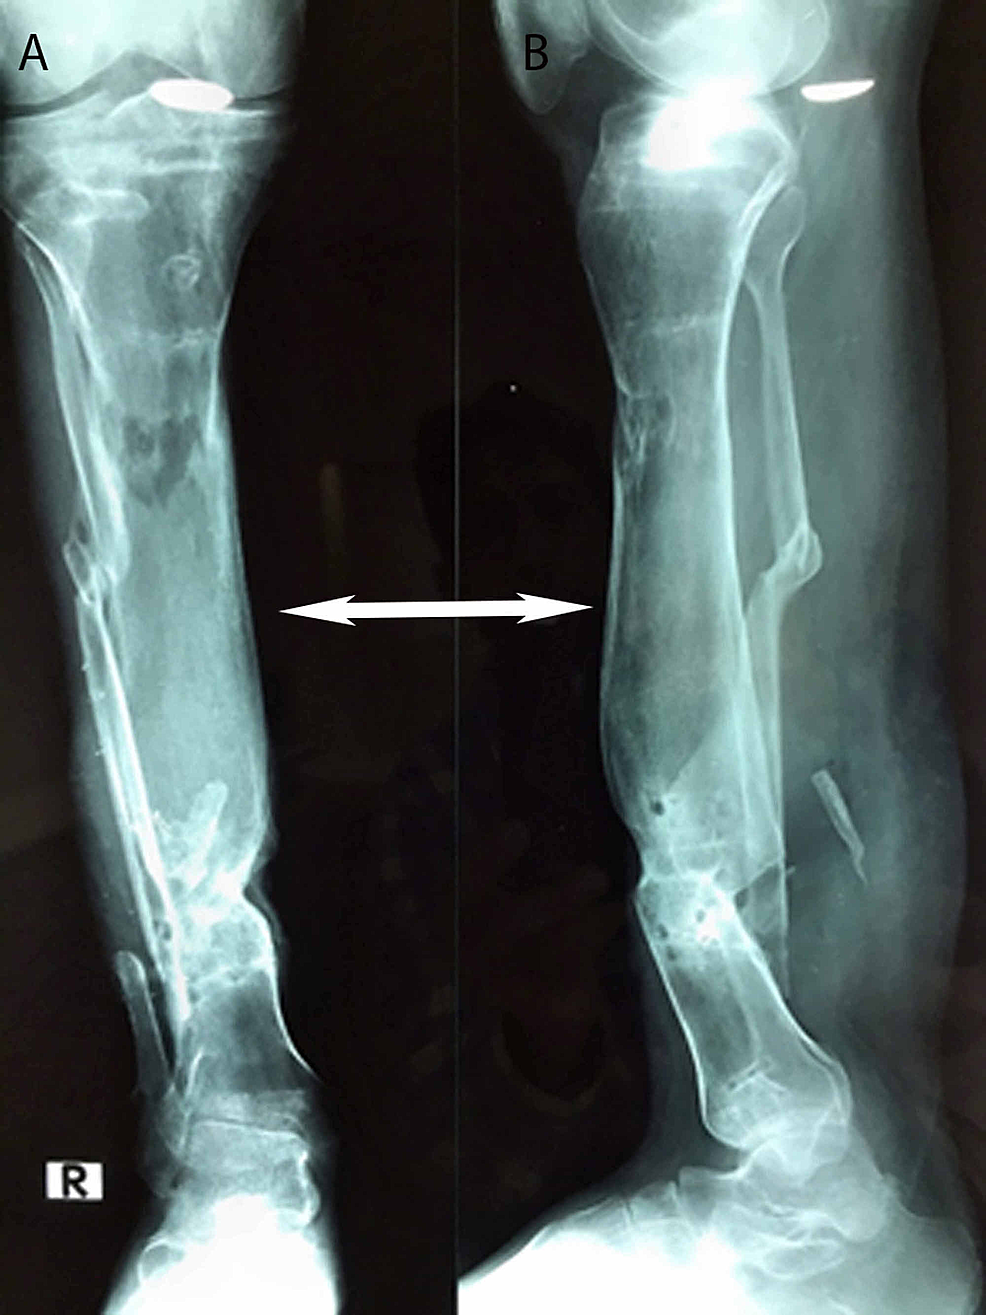 Postoperative-plain-radiographs-of-the-same-patient-after-removal-of-the-Ilizarov-frame,-showing-good-regeneration-of-bone-with-an-anteroposterior-view-(4A)-and-a-lateral-view-(4B)